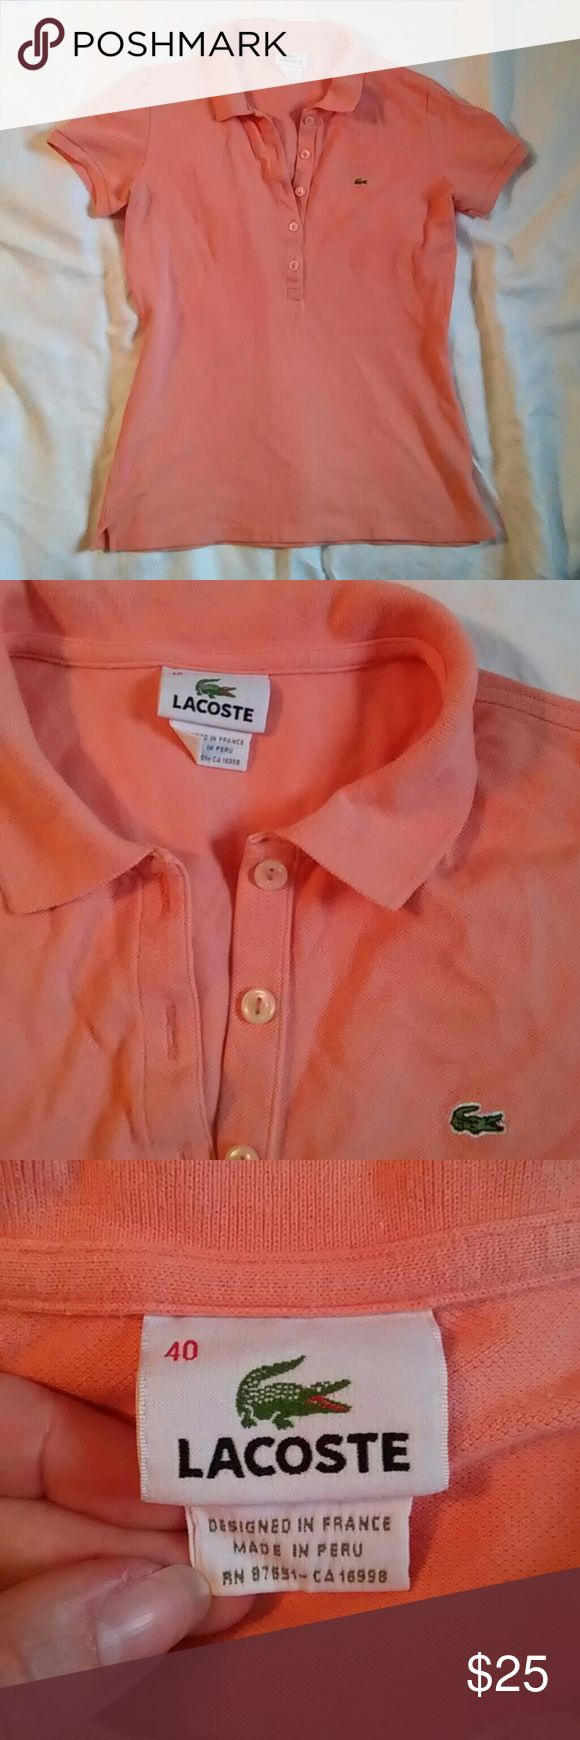 "Lacoste Preppy Classic Fit Pique Polo Shirt Very good used condition cotton pique polo shirt in melon.  Measures 18"" armpit to armpit and 21.5"" long. Lacoste Tops Tees - Short Sleeve"